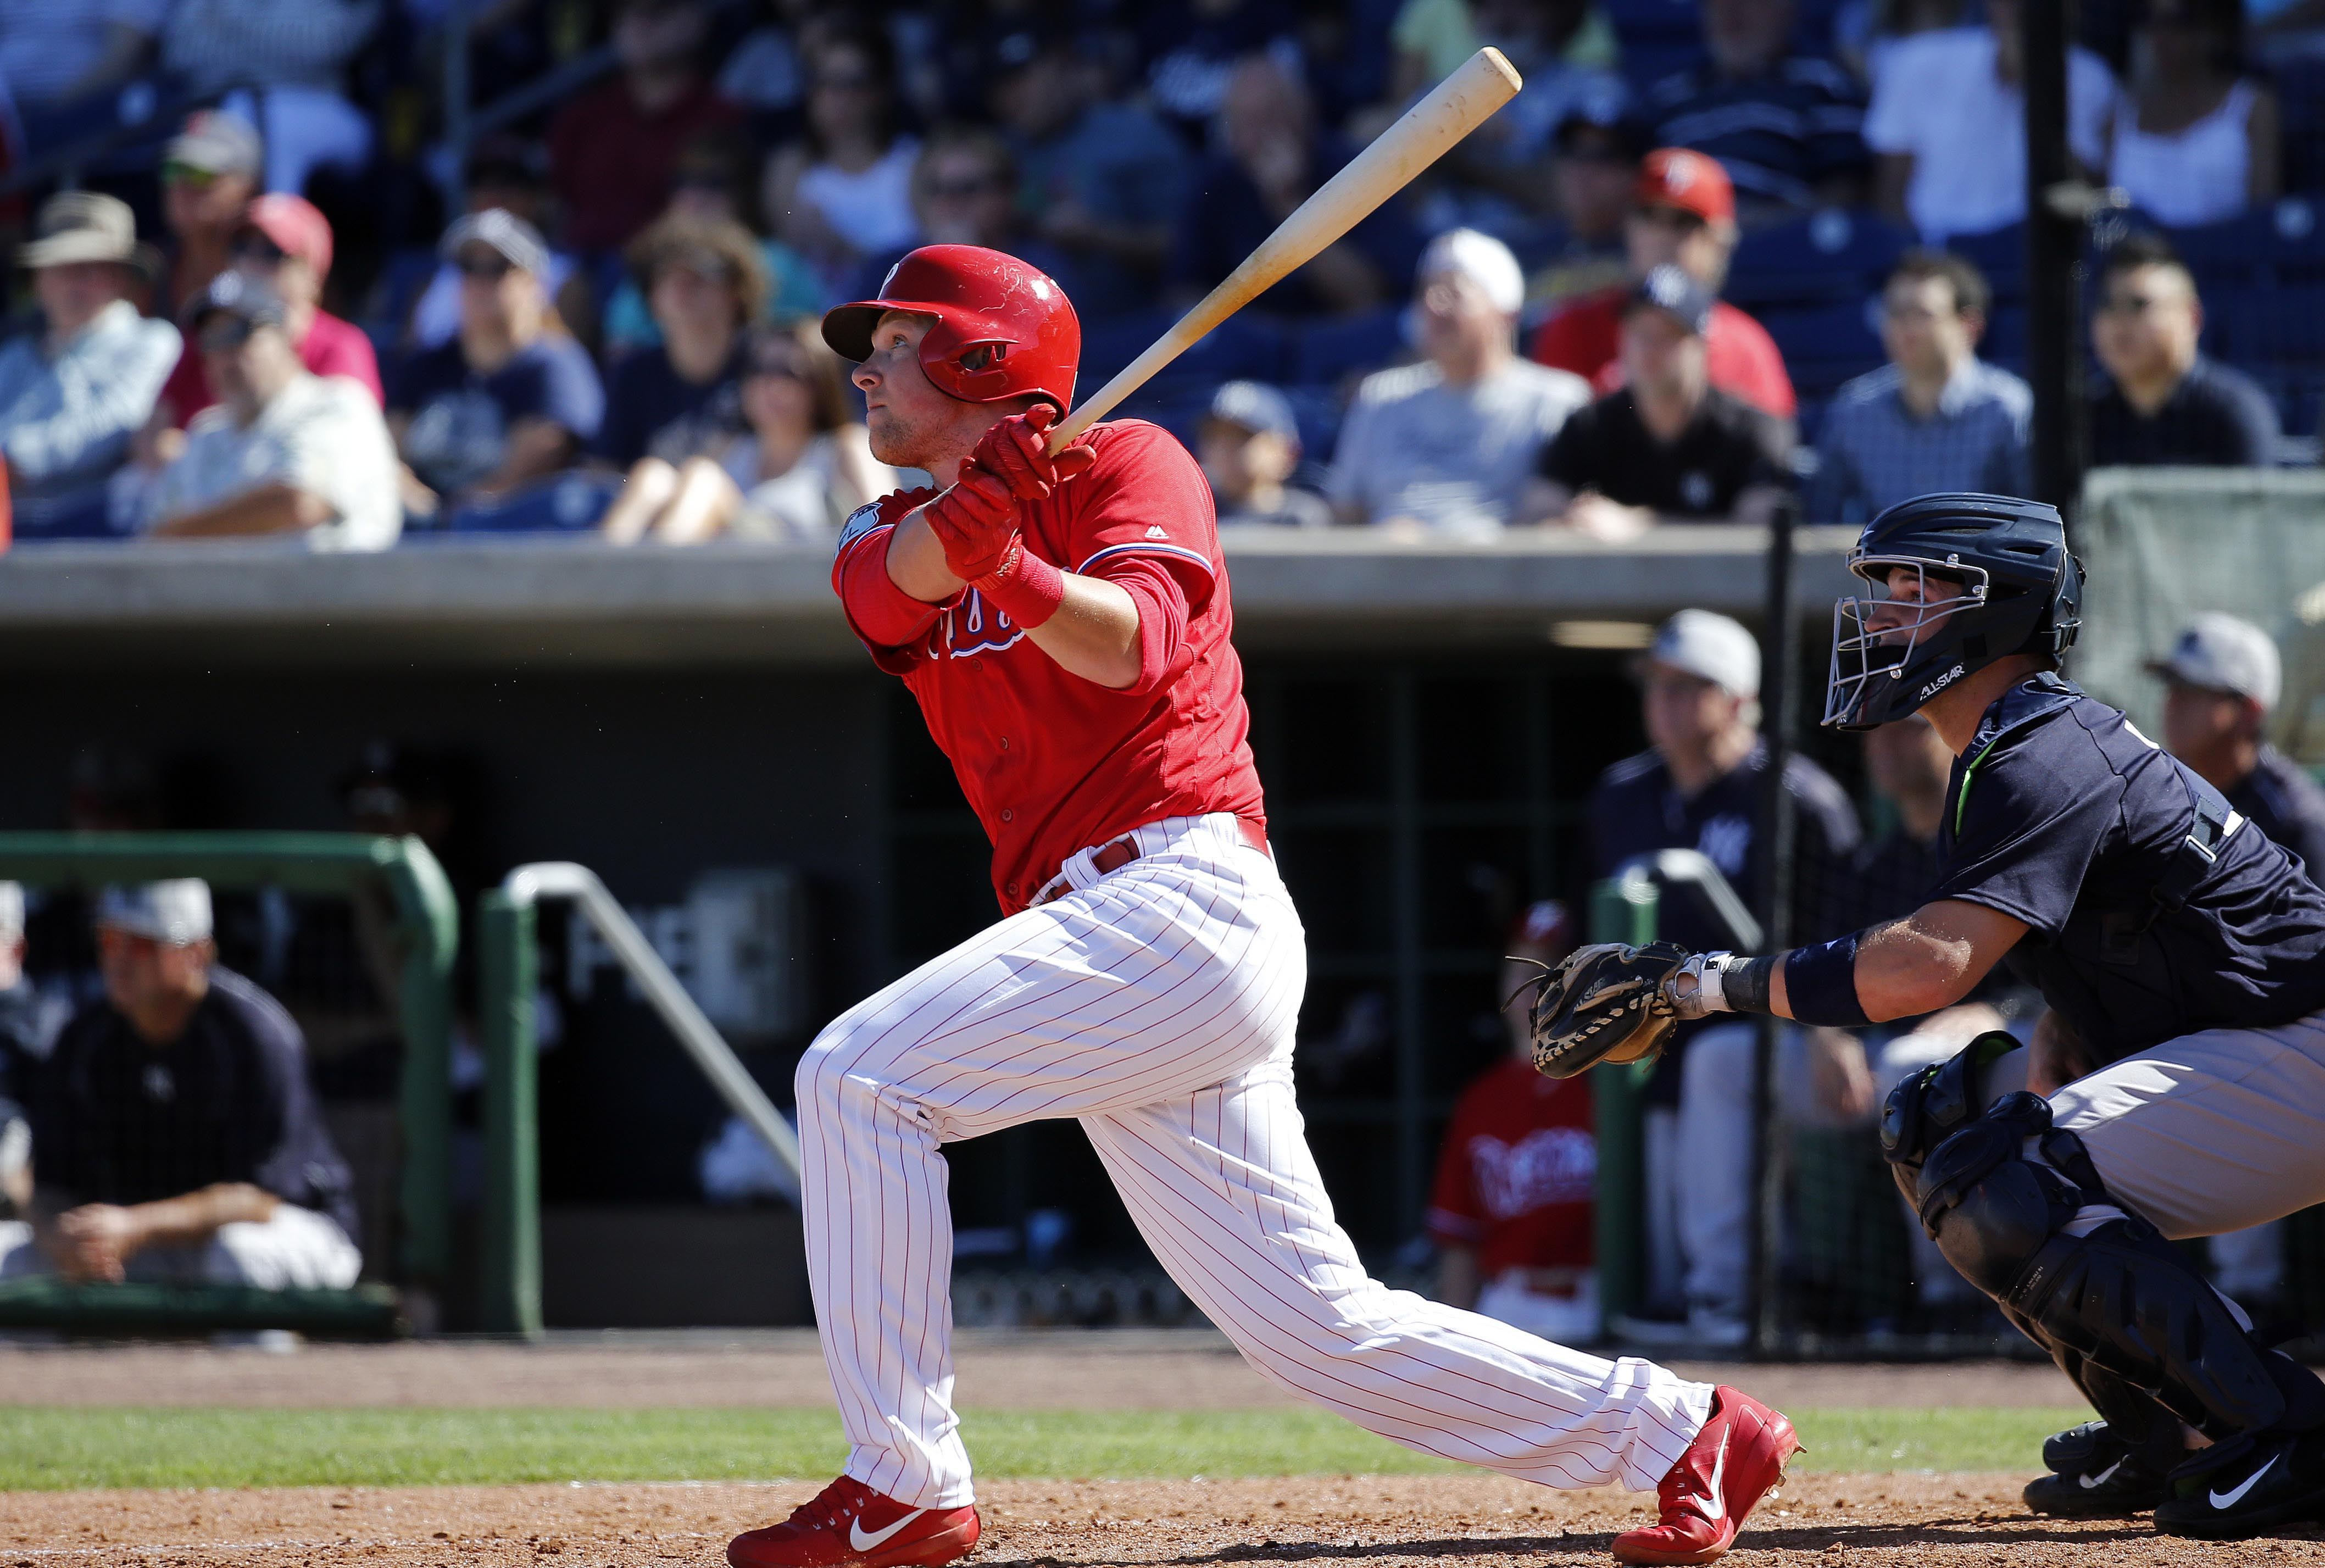 Phillies: Why the top prospects are still in the minor leagues